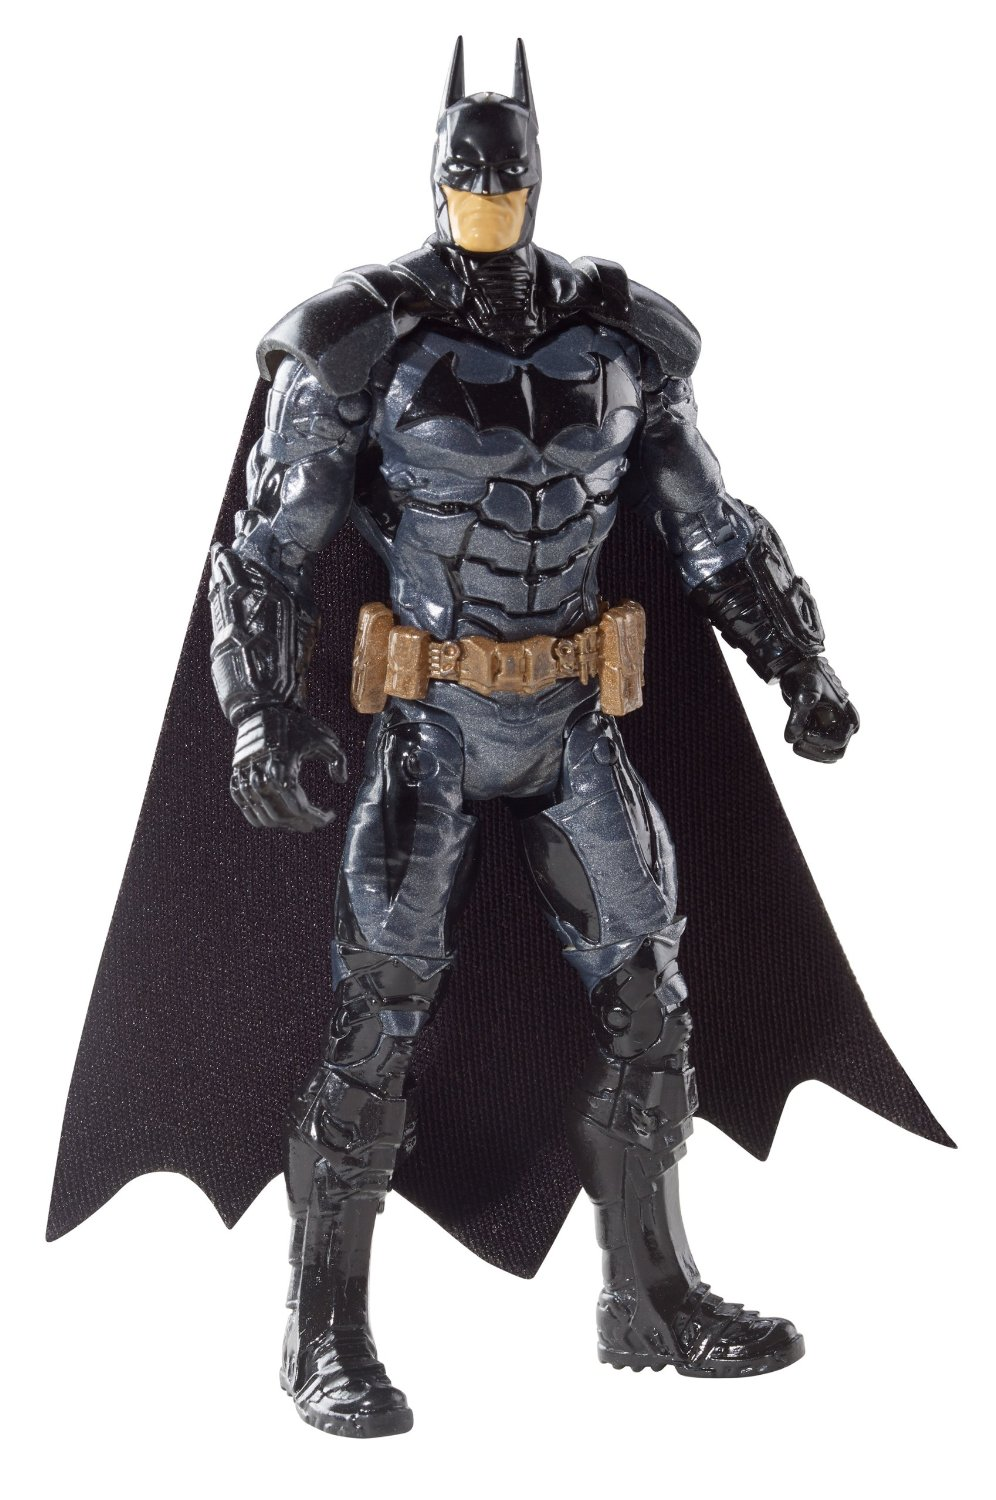 New Images for DC Multiverse Arkham Knight Figures on ...